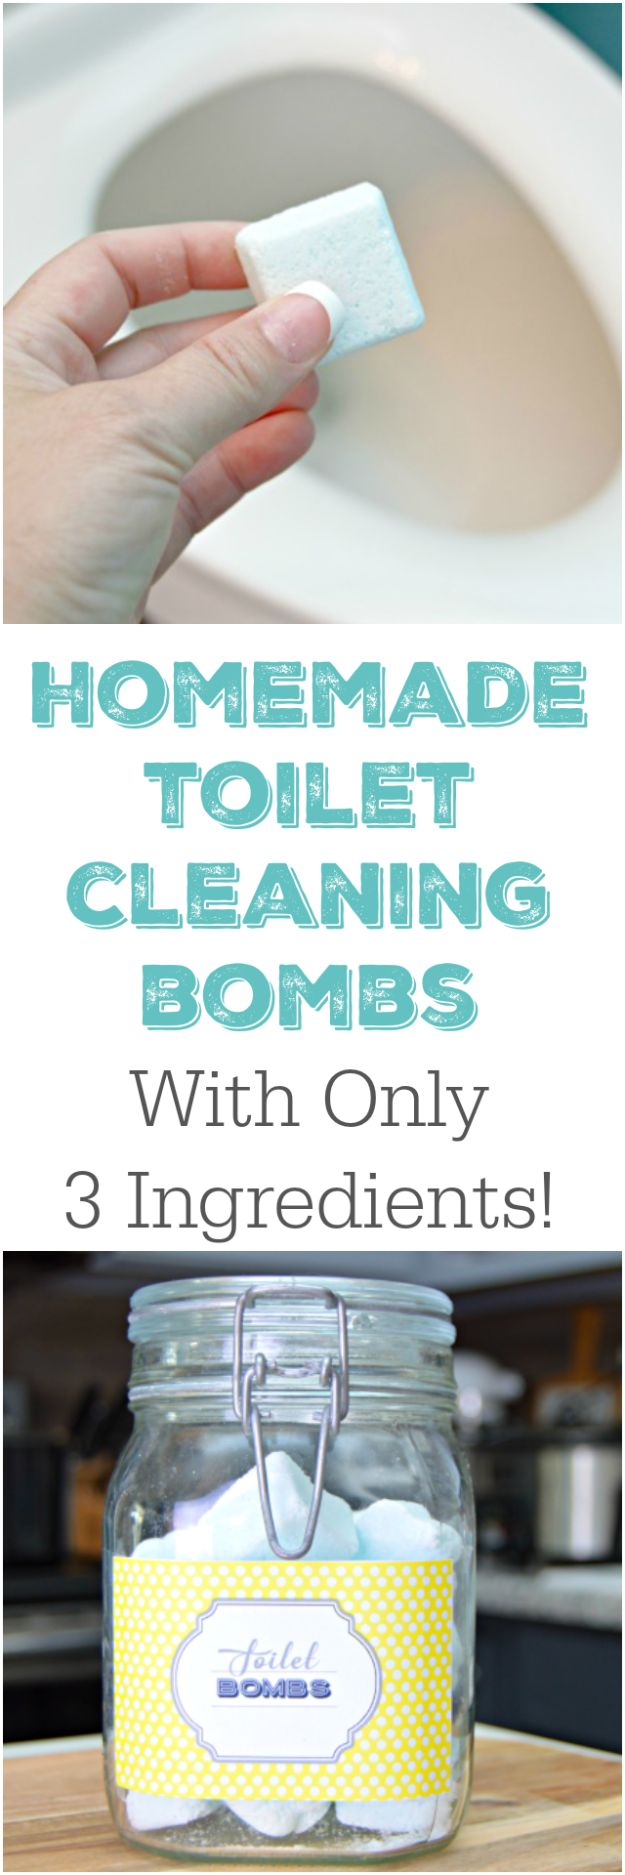 Cleaning Tips and Tricks - 3 Ingredient Homemade Toilet Cleaning Bombs - Best Cleaning Hacks, Recipes and Tutorials - Daily Ways to Clean For Kitchen, For Couches, Bathroom, Bedroom, Laundry, Floors, Furniture, Windows, Cleaners and More for Cleaning Your Home- Quick Ideas for Lazy People - Cool Cleaning Hack Tutorial